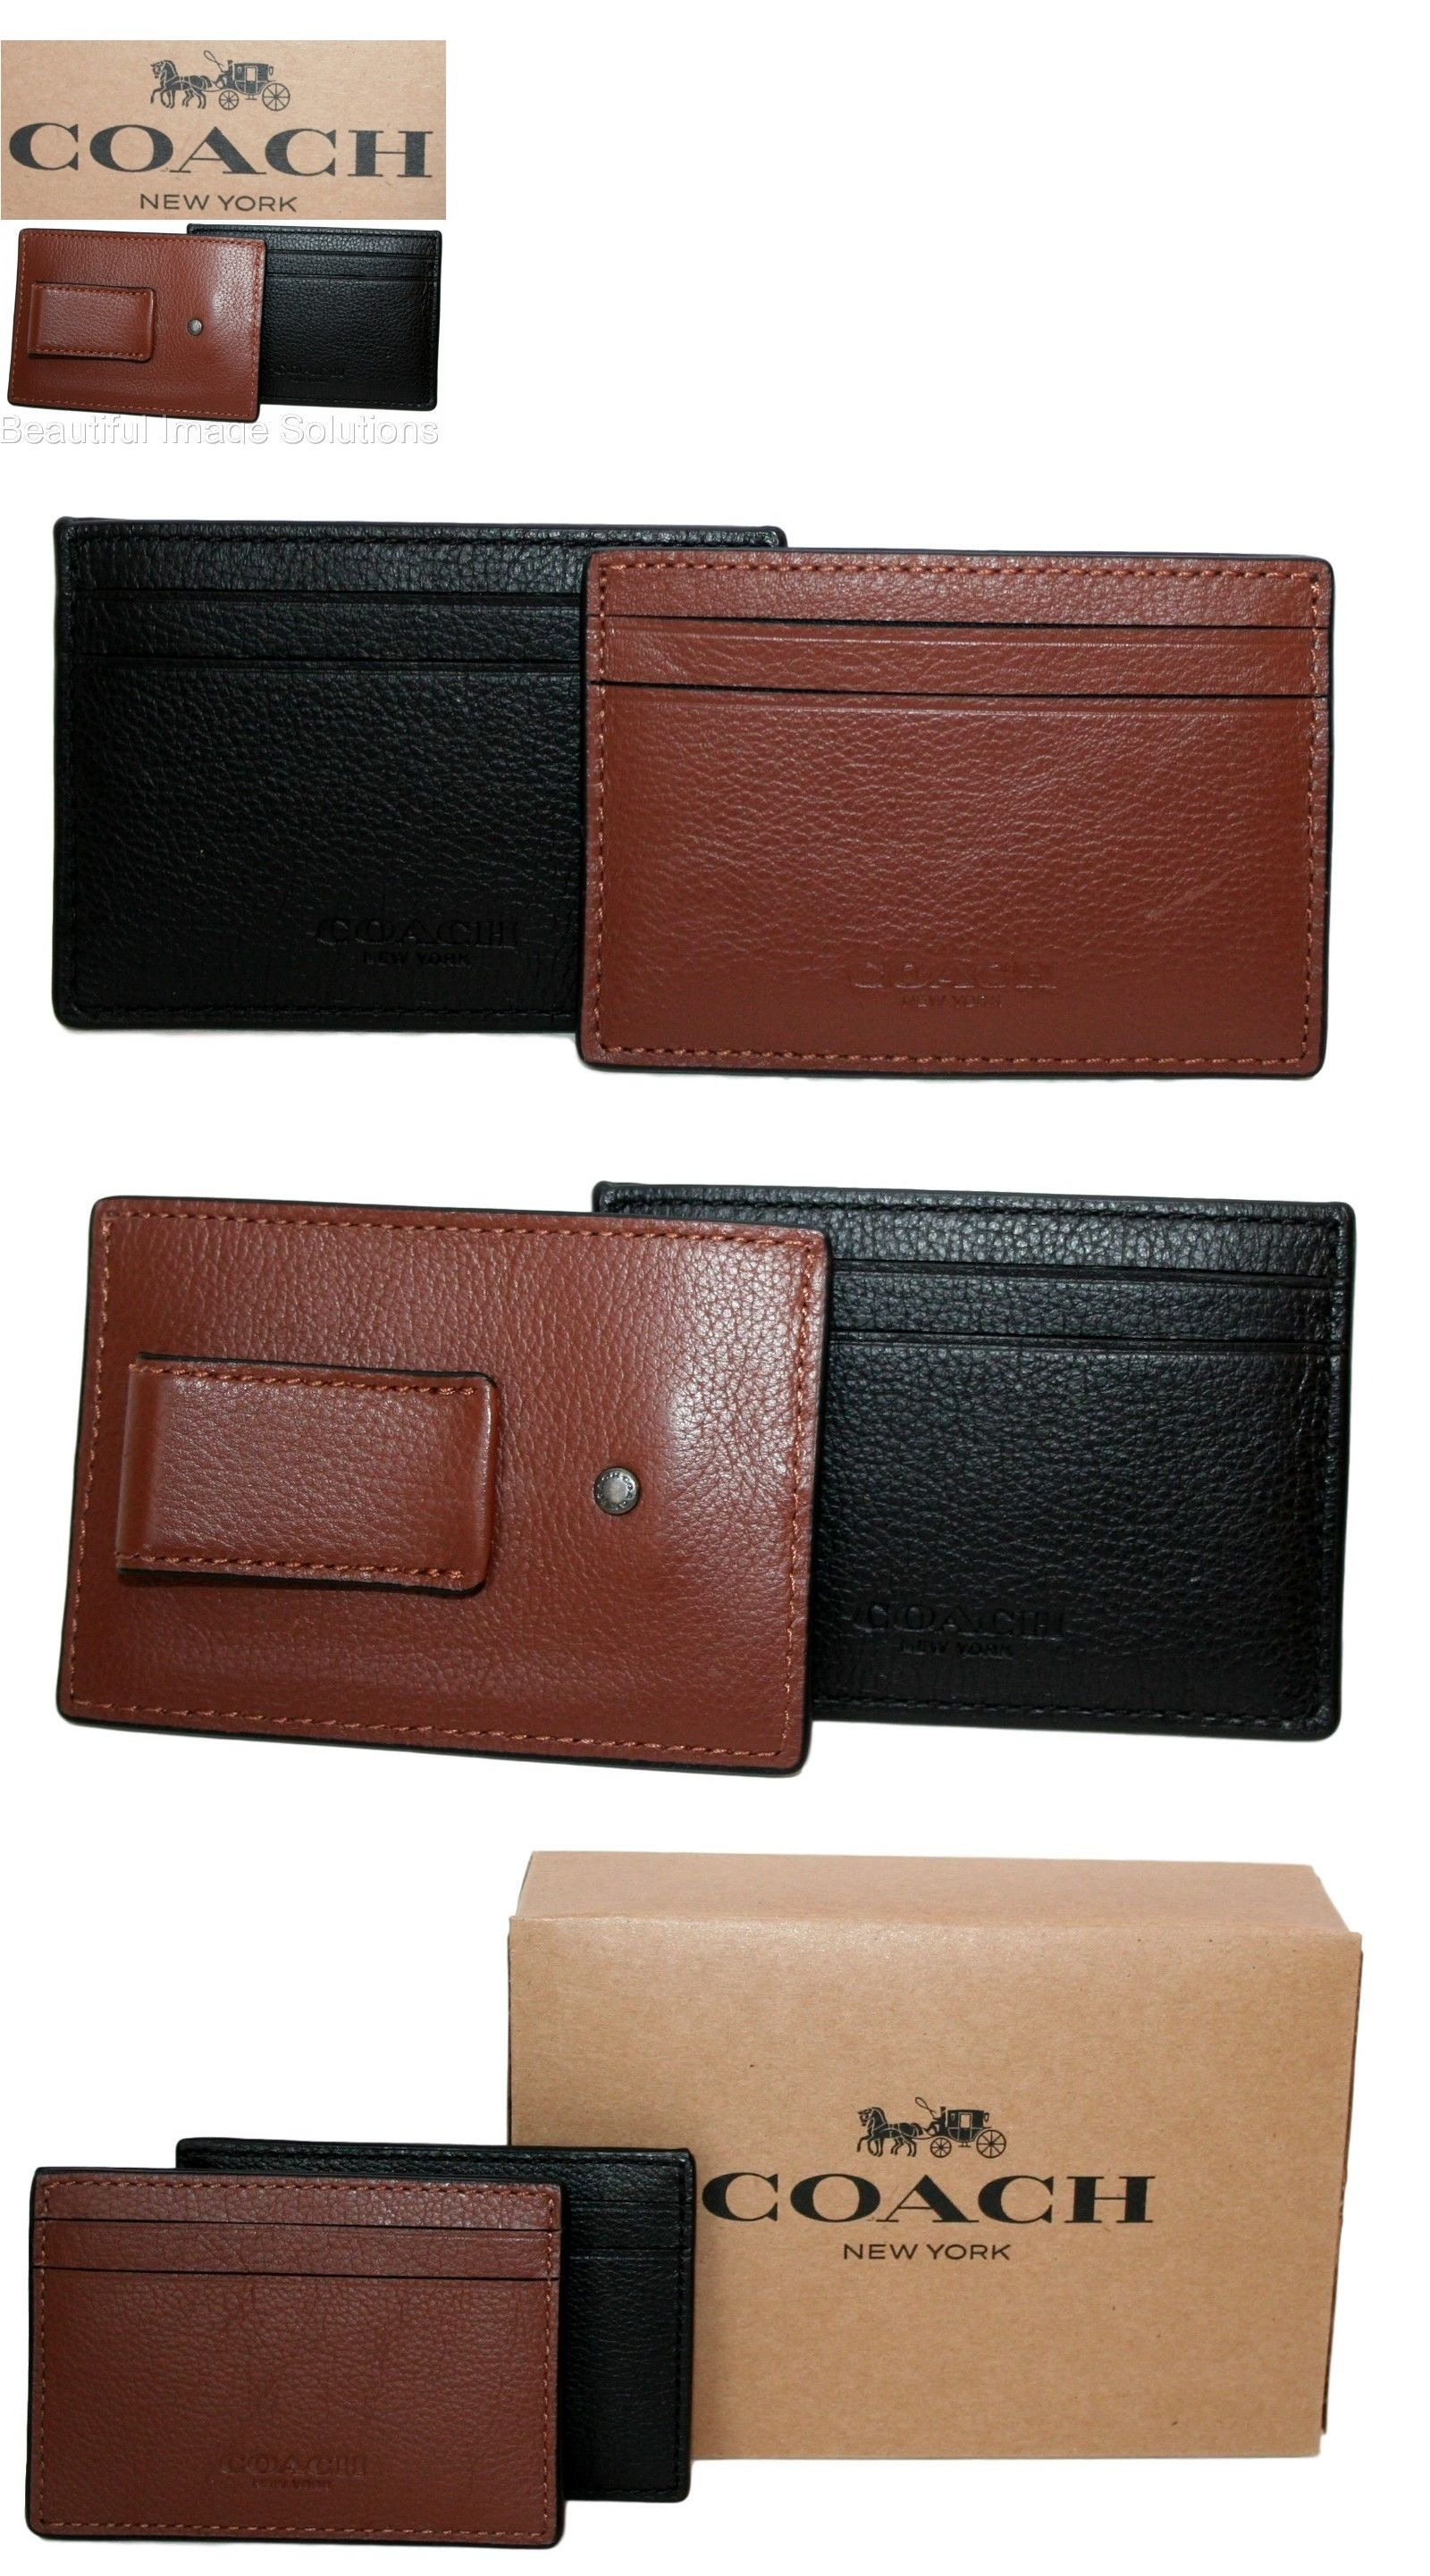 Business and credit card cases 105860 coach men s women s black or business and credit card cases 105860 coach men s women s black or saddle leather reheart Image collections